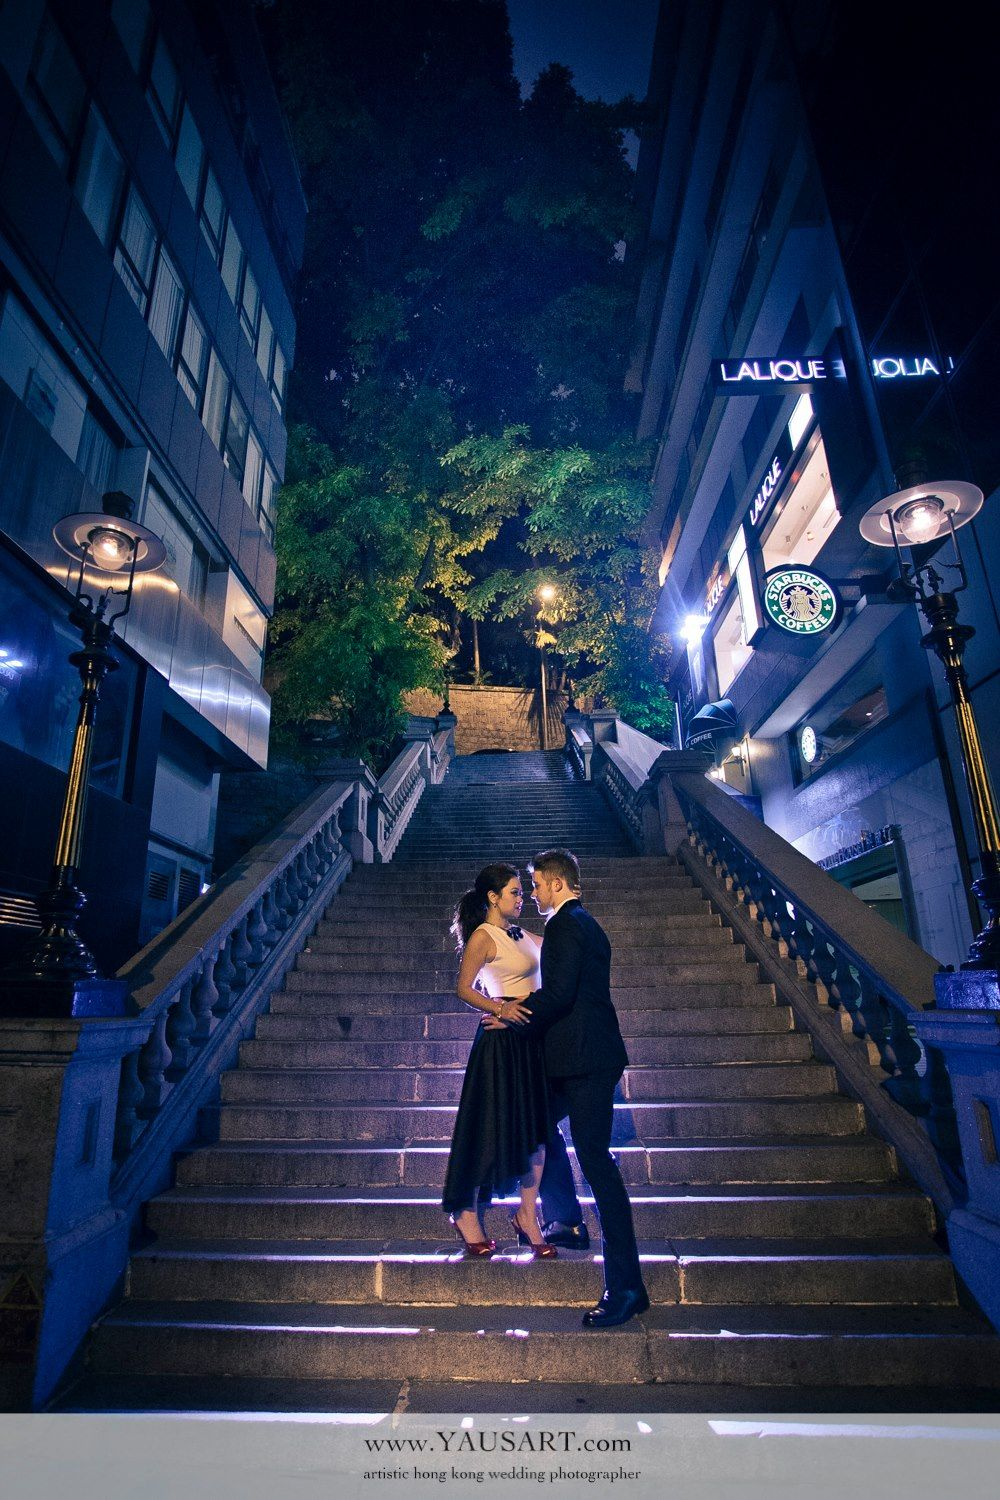 Hong Kong Wedding Photo Pre Wedding Photo Wedding In Hong Kong Hong Kong Wedding Photographer Pre Wedding Poses Pre Wedding Shoot Ideas Pre Nup Photoshoot